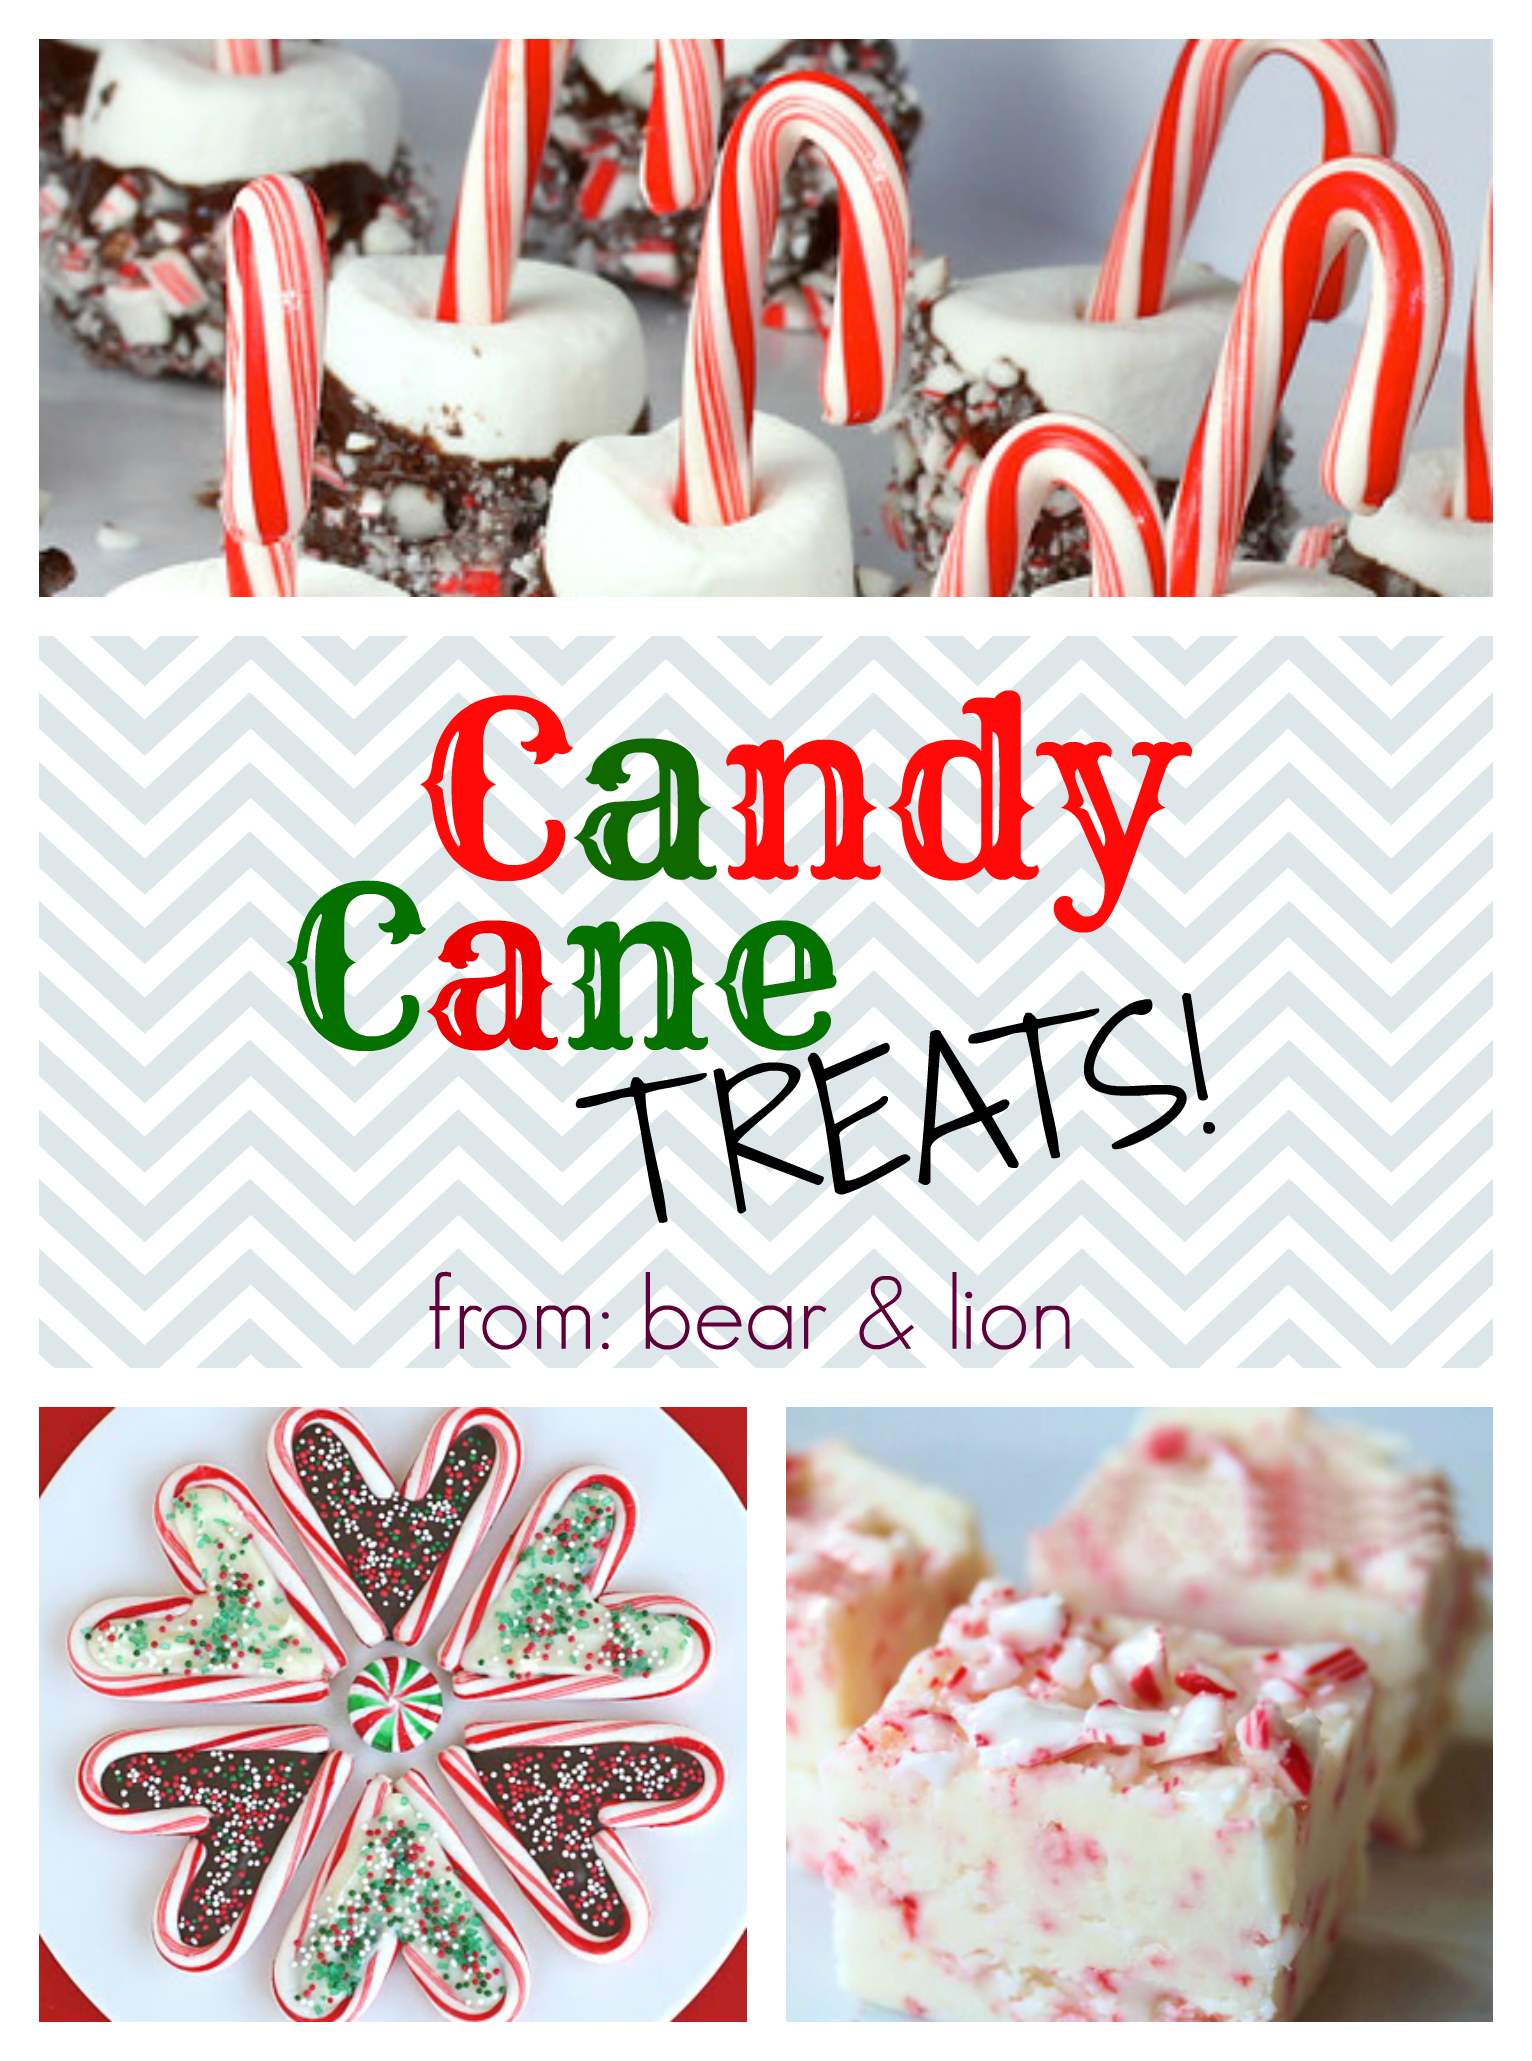 candy cane treats! YUM!